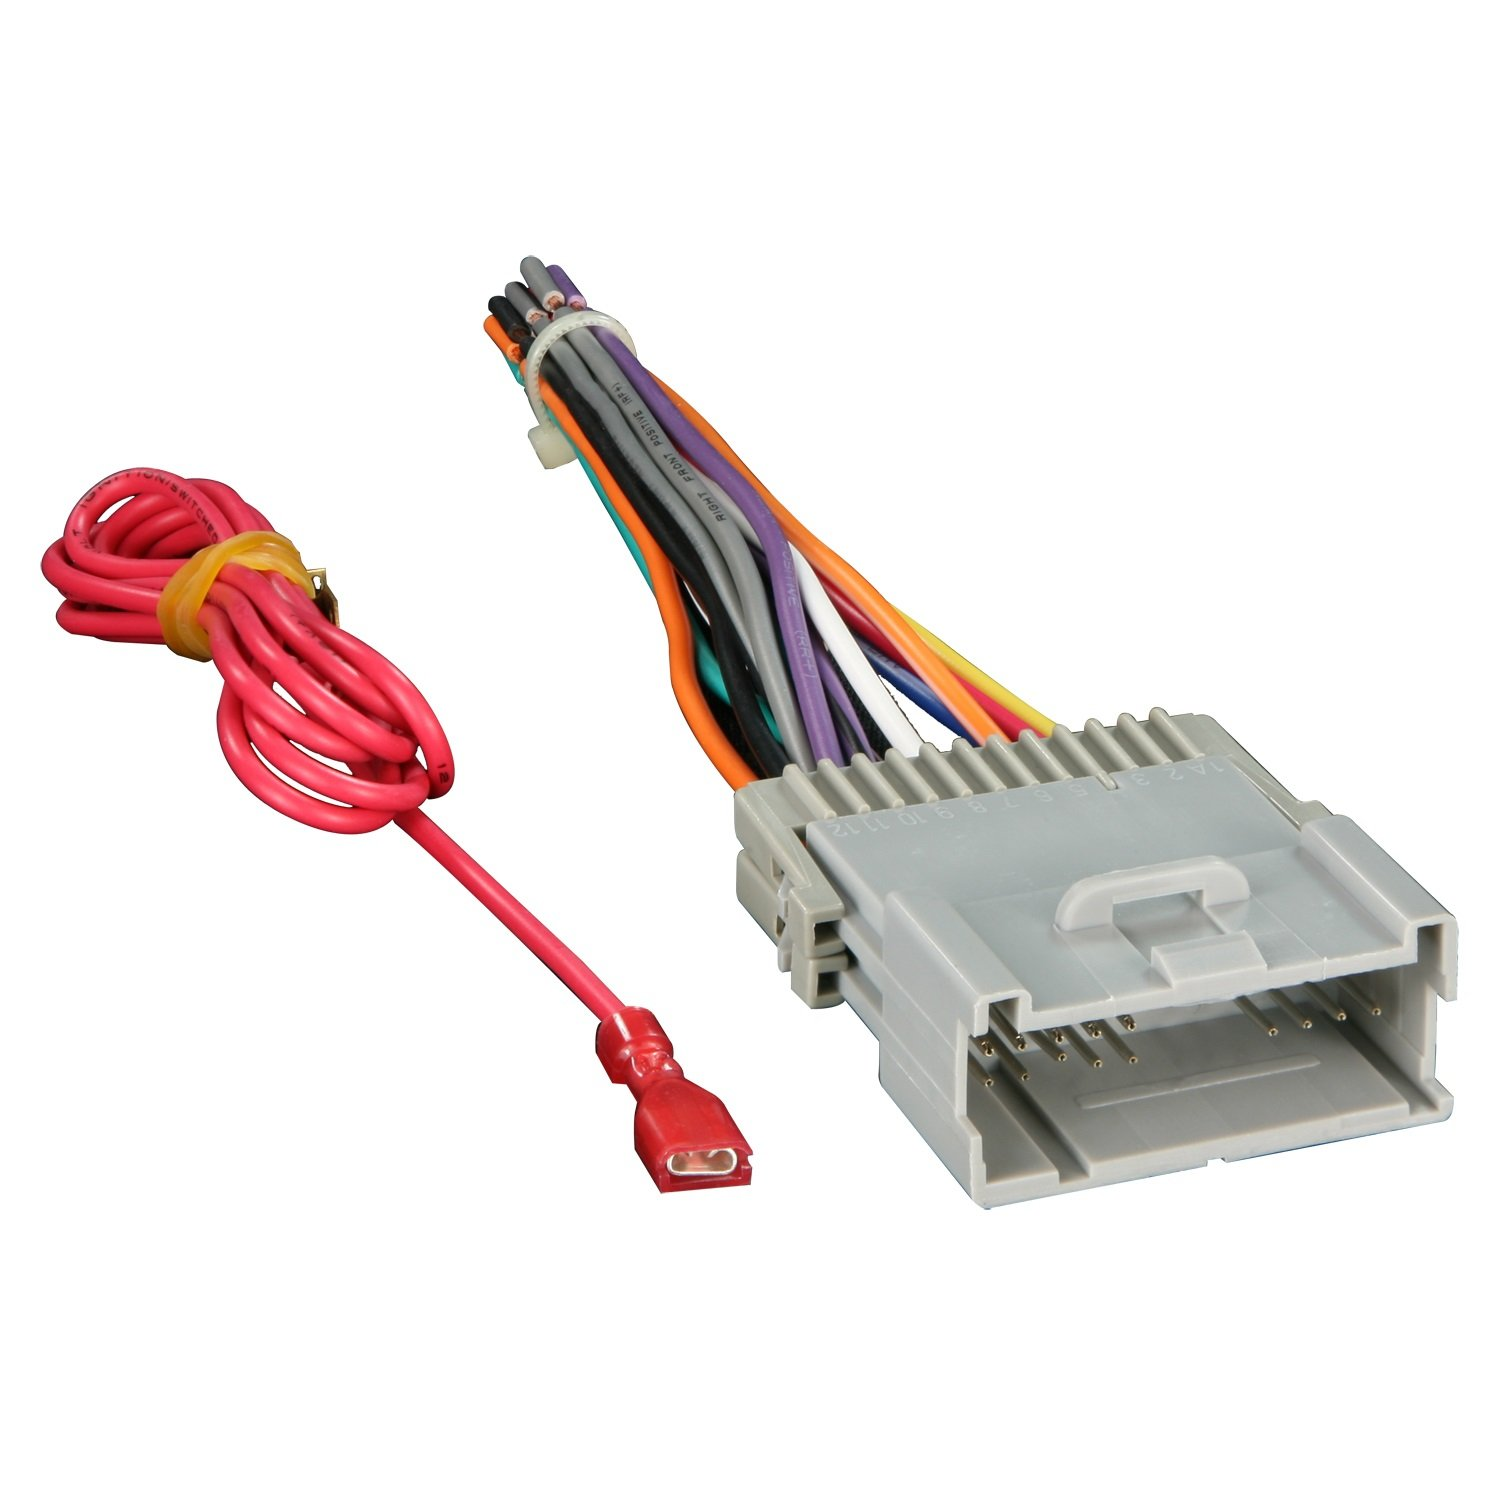 61eewxp9orL._SL1500_ amazon com metra 70 2003 radio wiring harness for gm 98 08 what is a wire harness in a car at bayanpartner.co